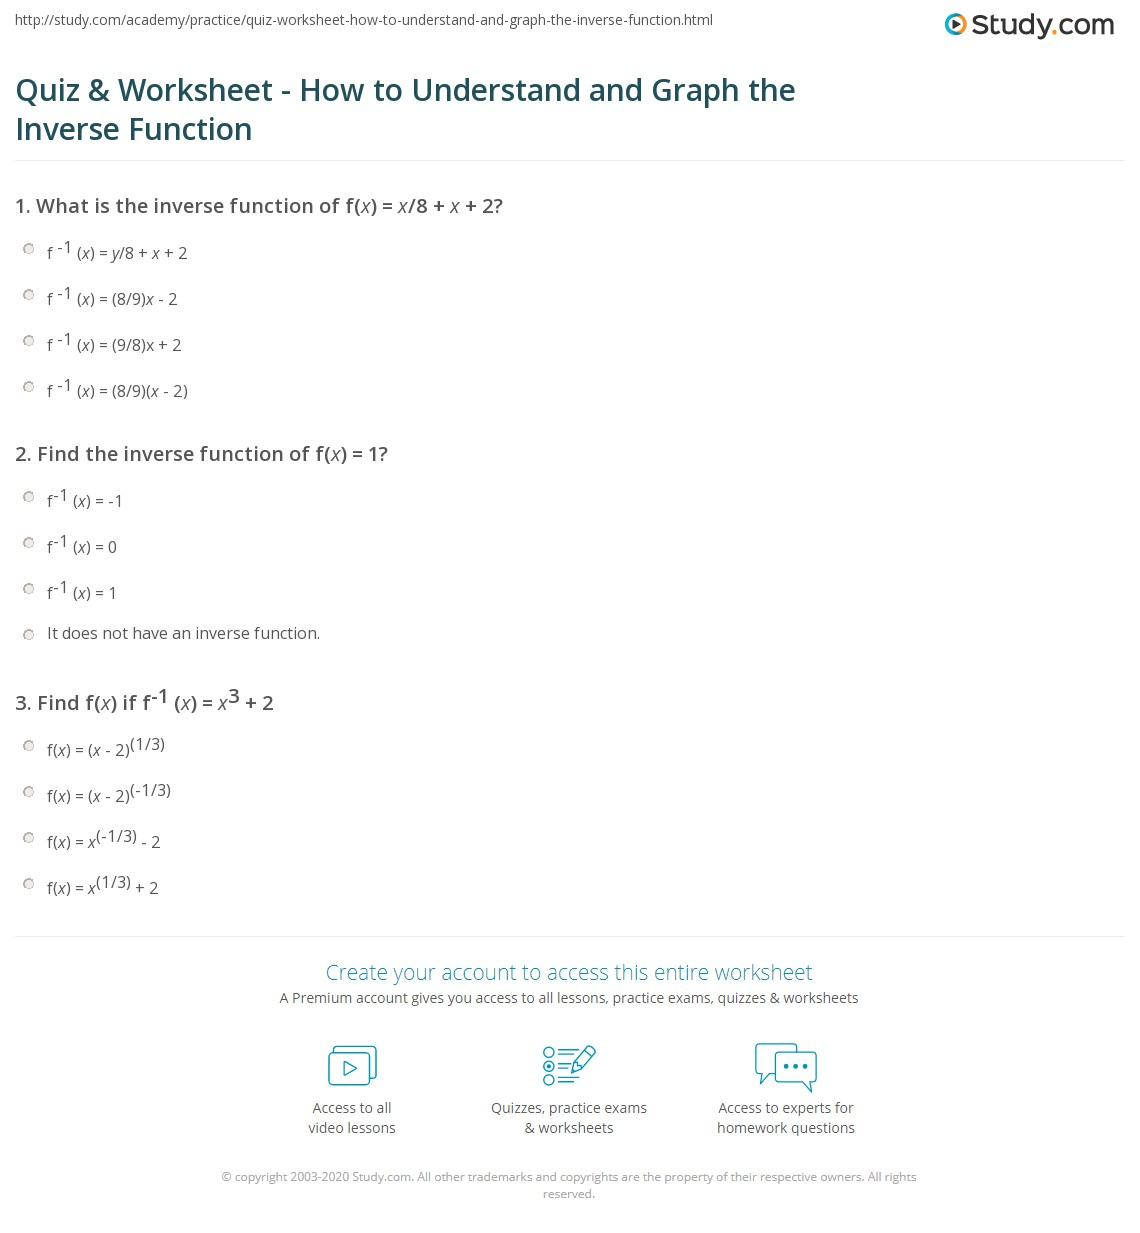 worksheet 8 F 2 Worksheet quiz worksheet how to understand and graph the inverse function print understanding graphing worksheet